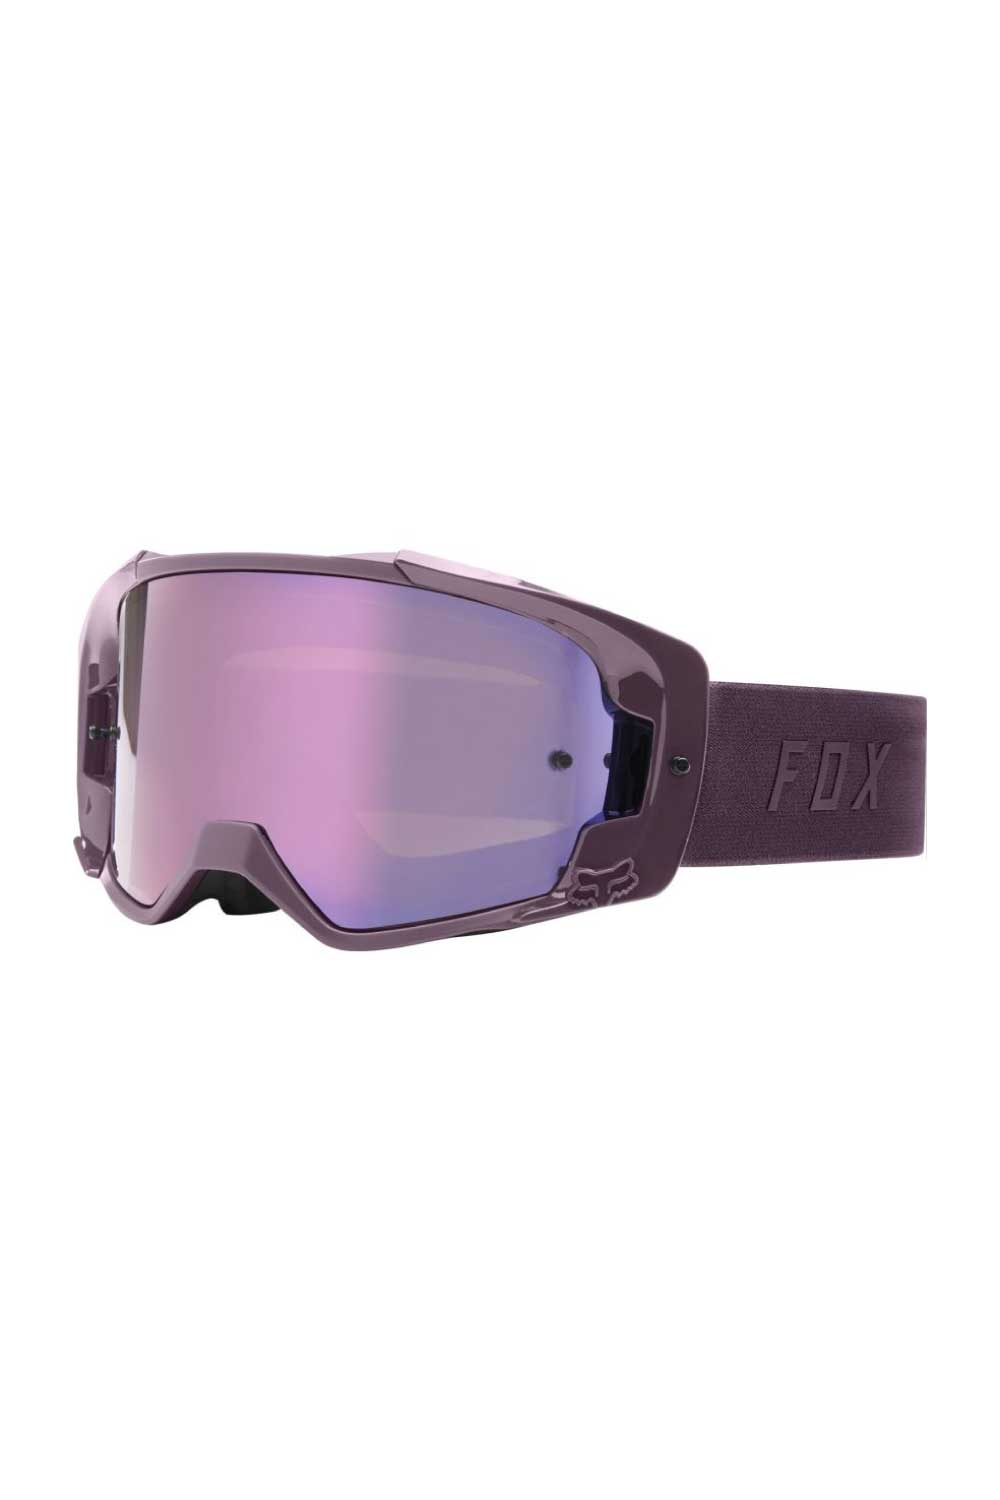 FOX Racing MX VUE MTB Goggles